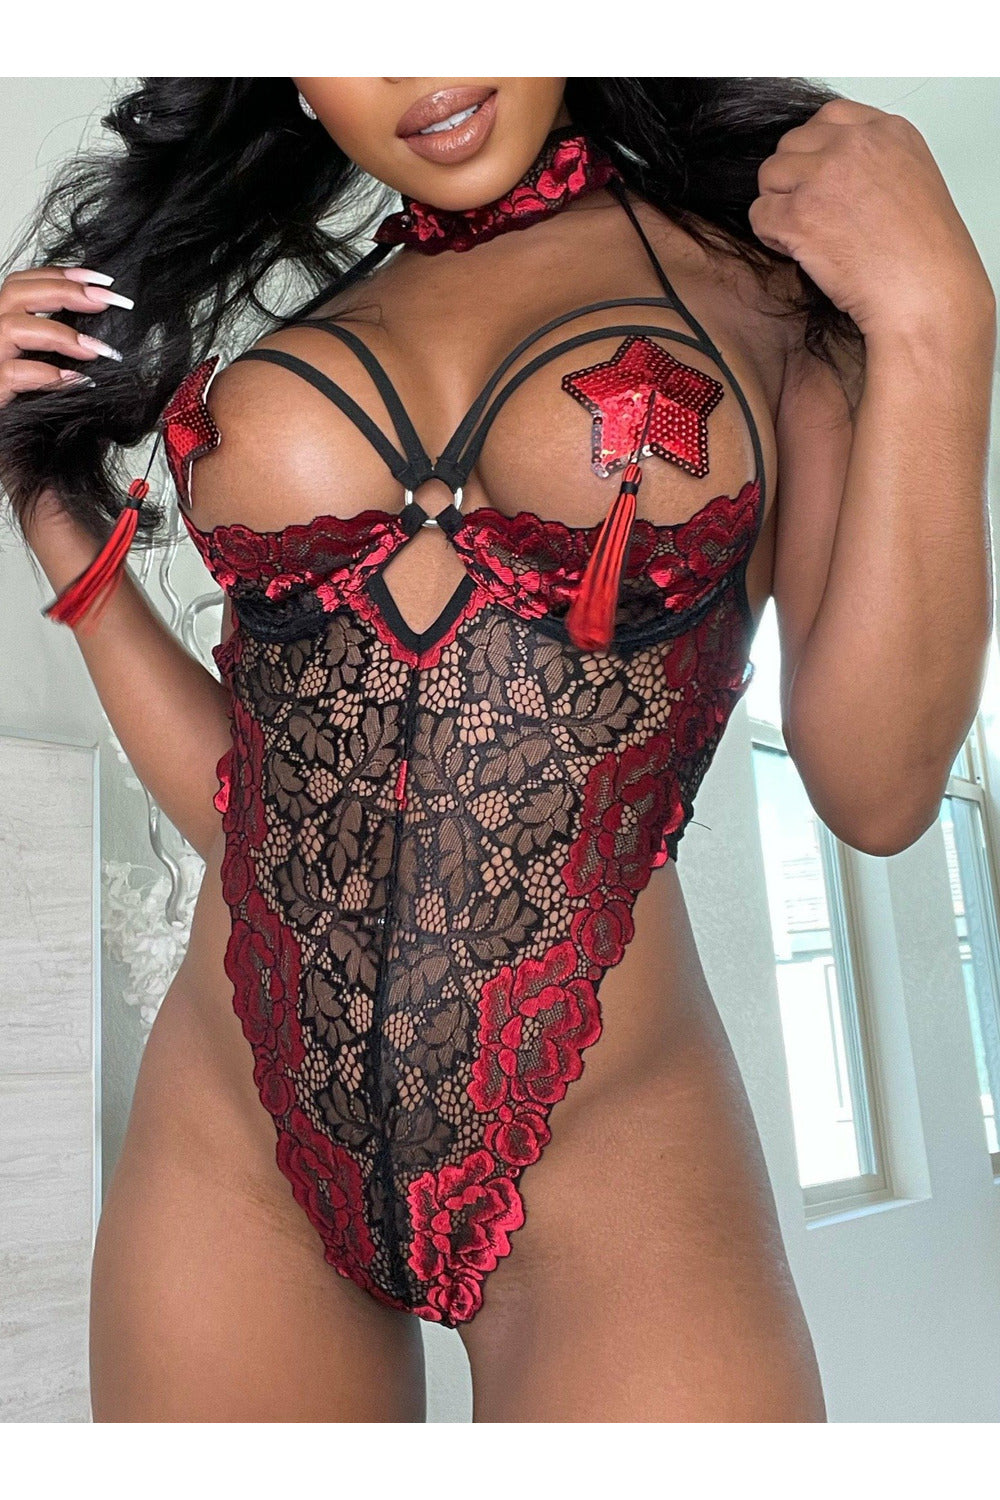 Collared Red Lace Teddy